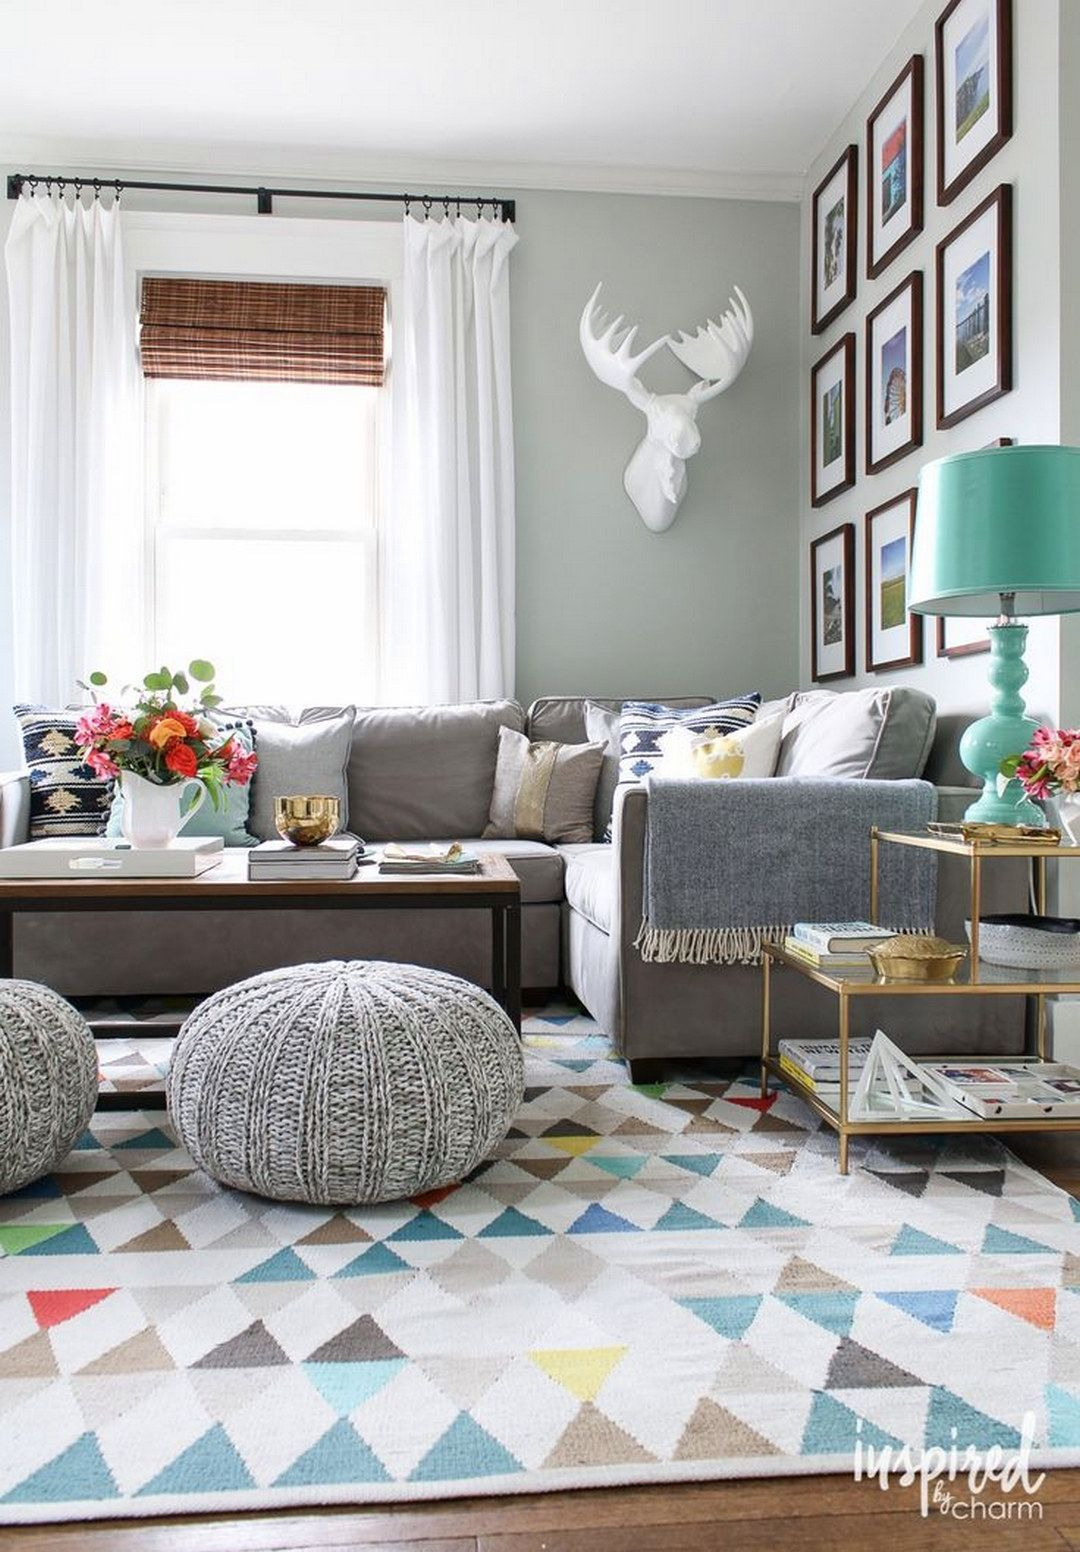 50 ways to decorate your home with kids in mind for 12x12 living room ideas